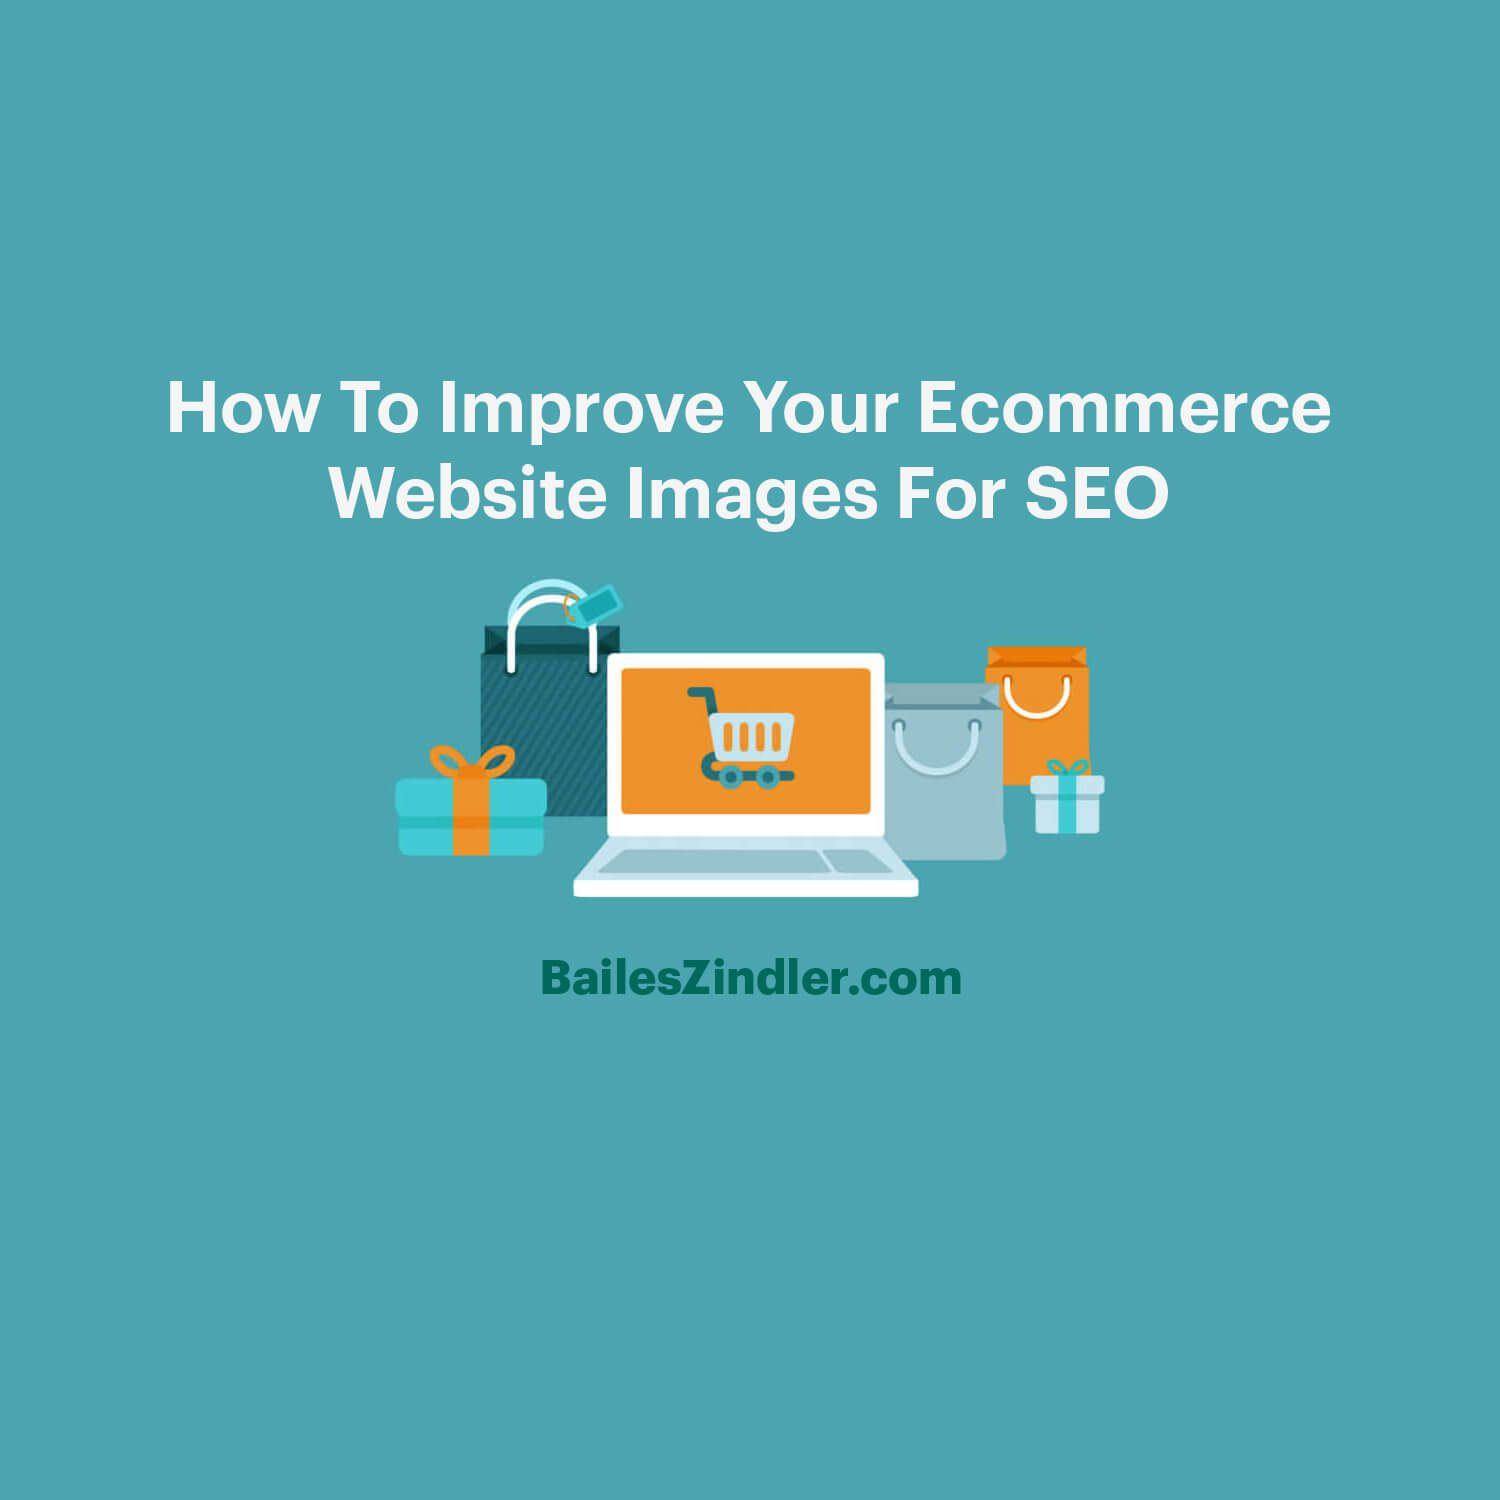 How To Improve Your Ecommerce Website Images For Search Engine Optimization